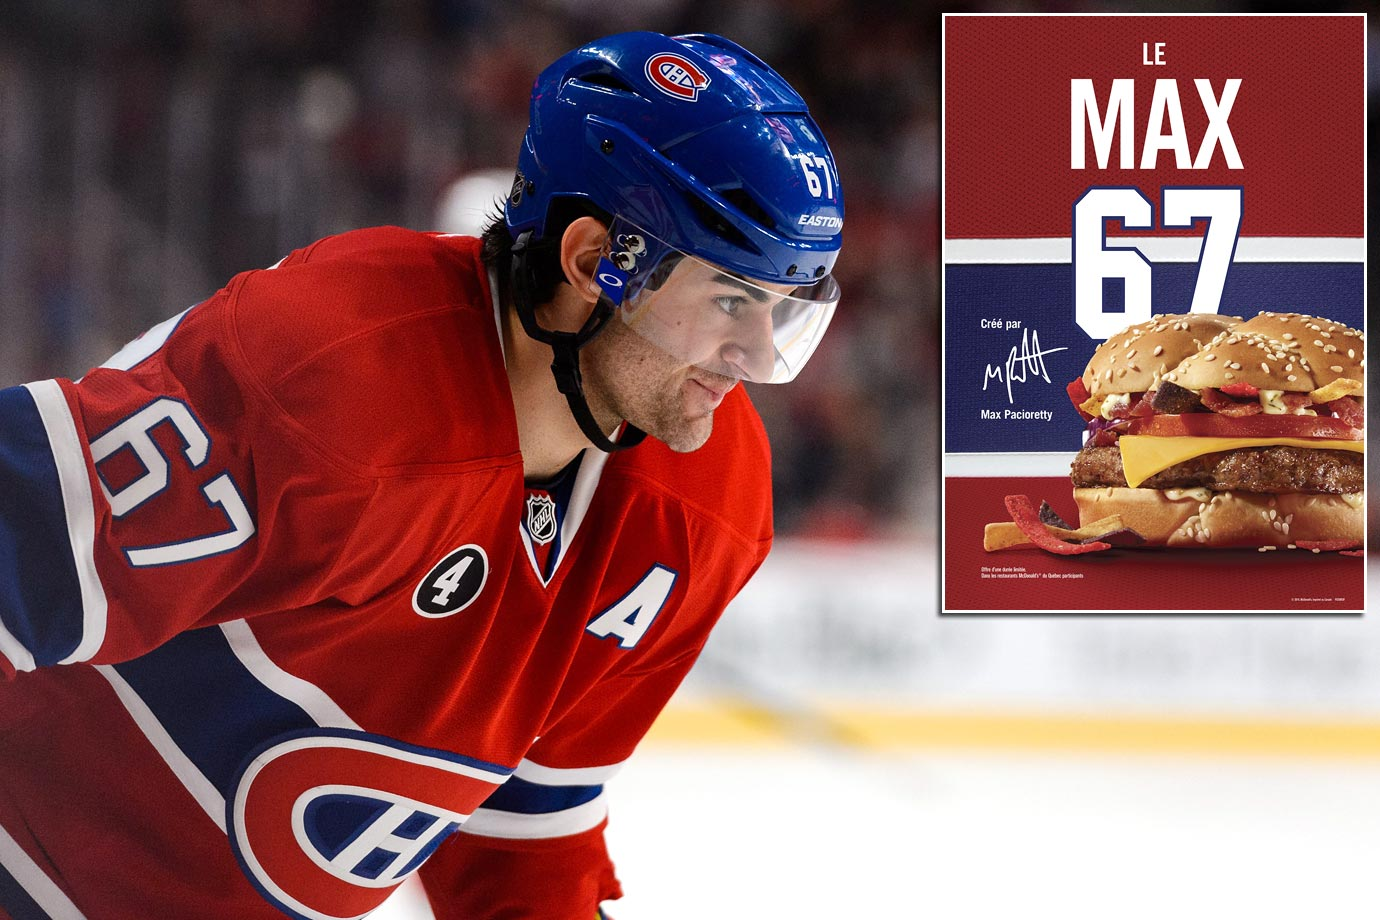 It's not the most famous jersey number in NHL history, but that might change if the Max 67 burger introduced this spring in his honor at McDonald's across Quebec takes off.